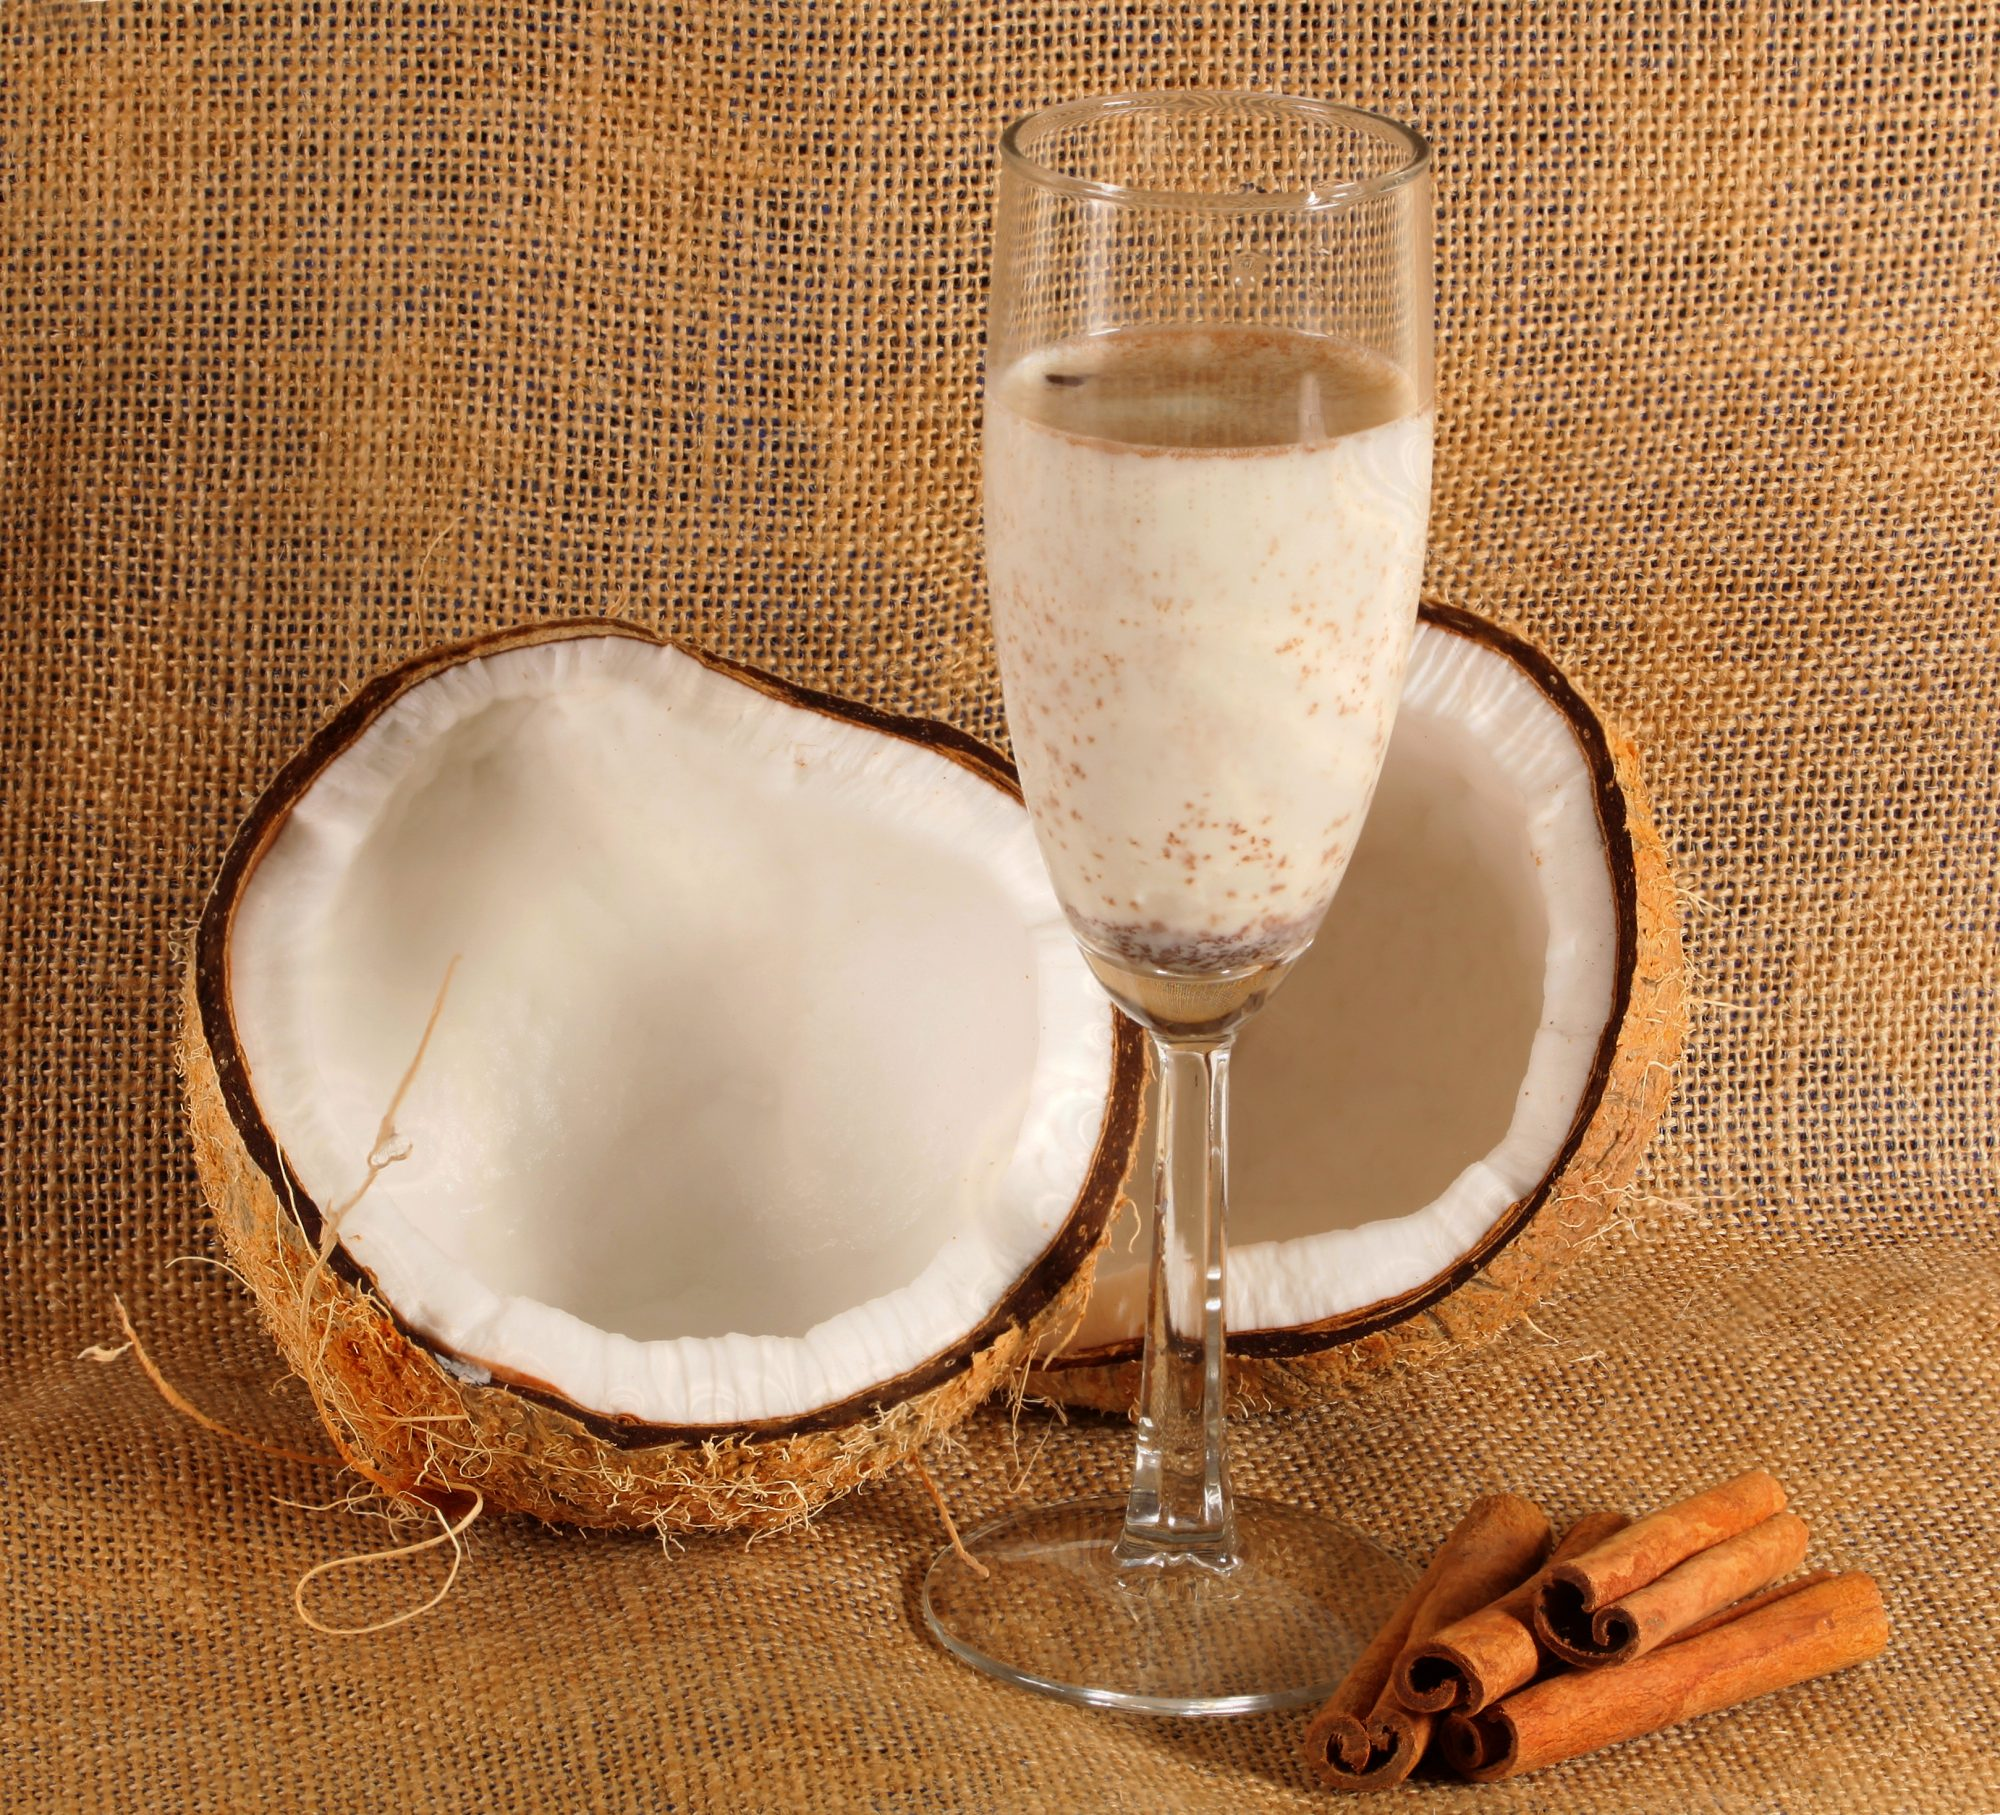 puerto-rico-christmas-foods-coquito-FT-BLOG1218.jpg